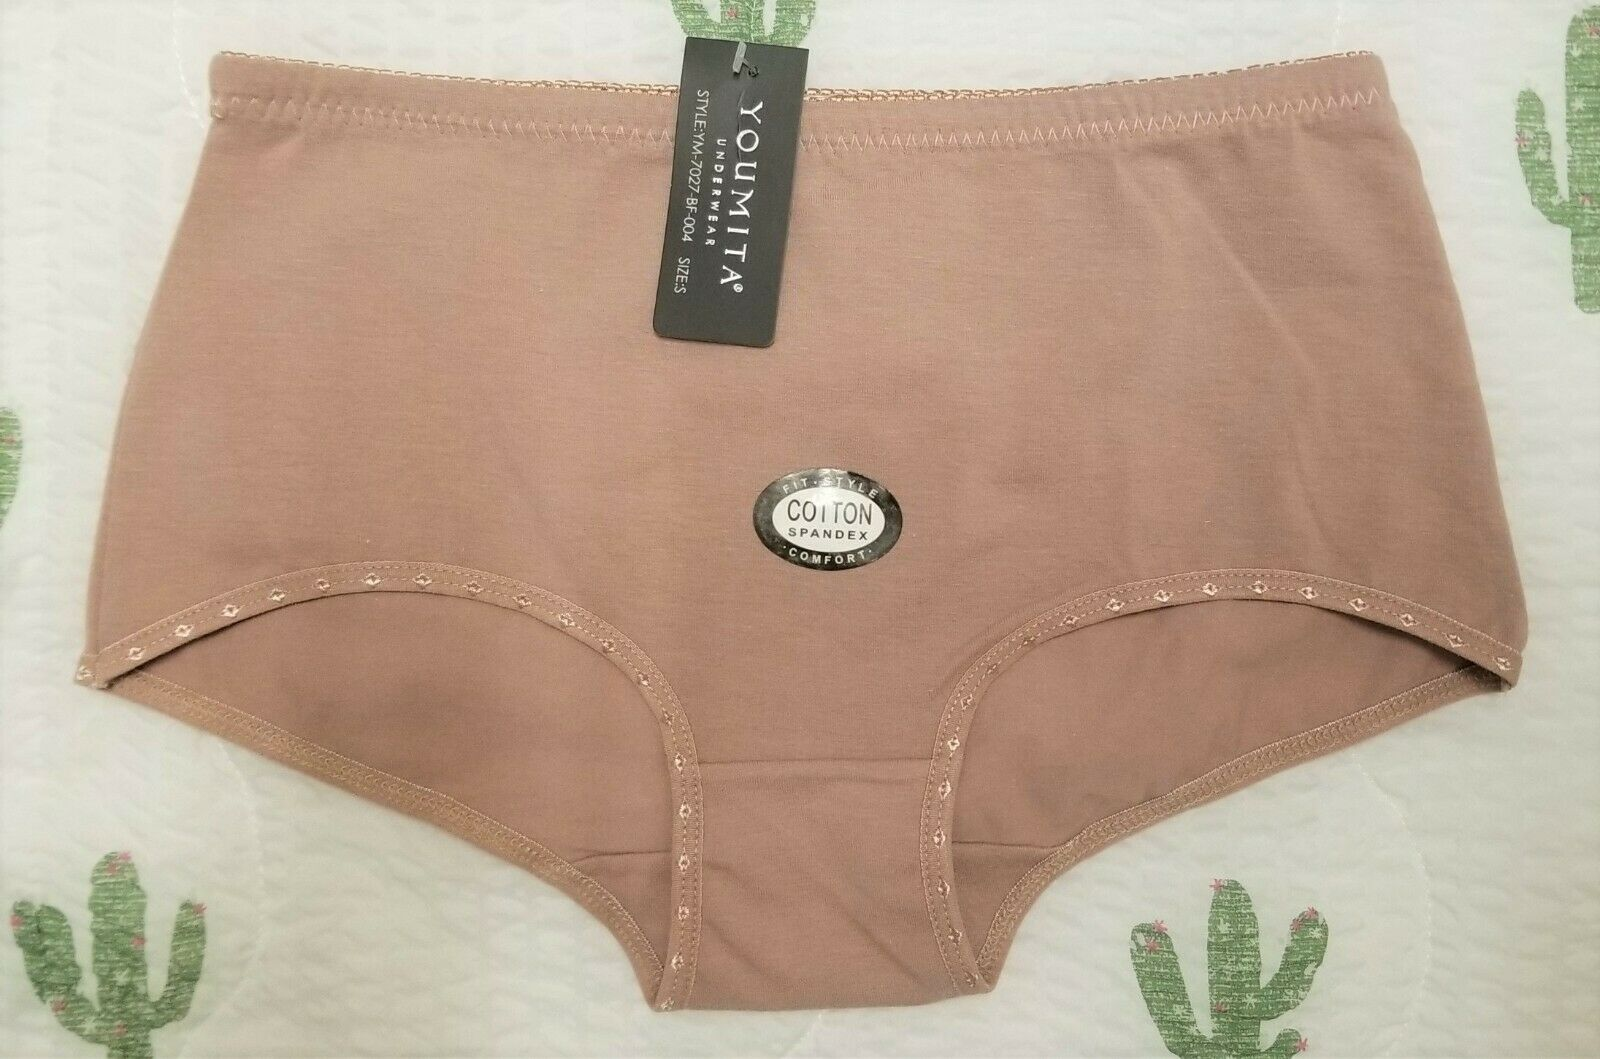 Lot 6 Women's Ladies Cotton High Waist Tummy Control Brief Panties Size S-2XL Youmita Does Not Apply - фотография #6